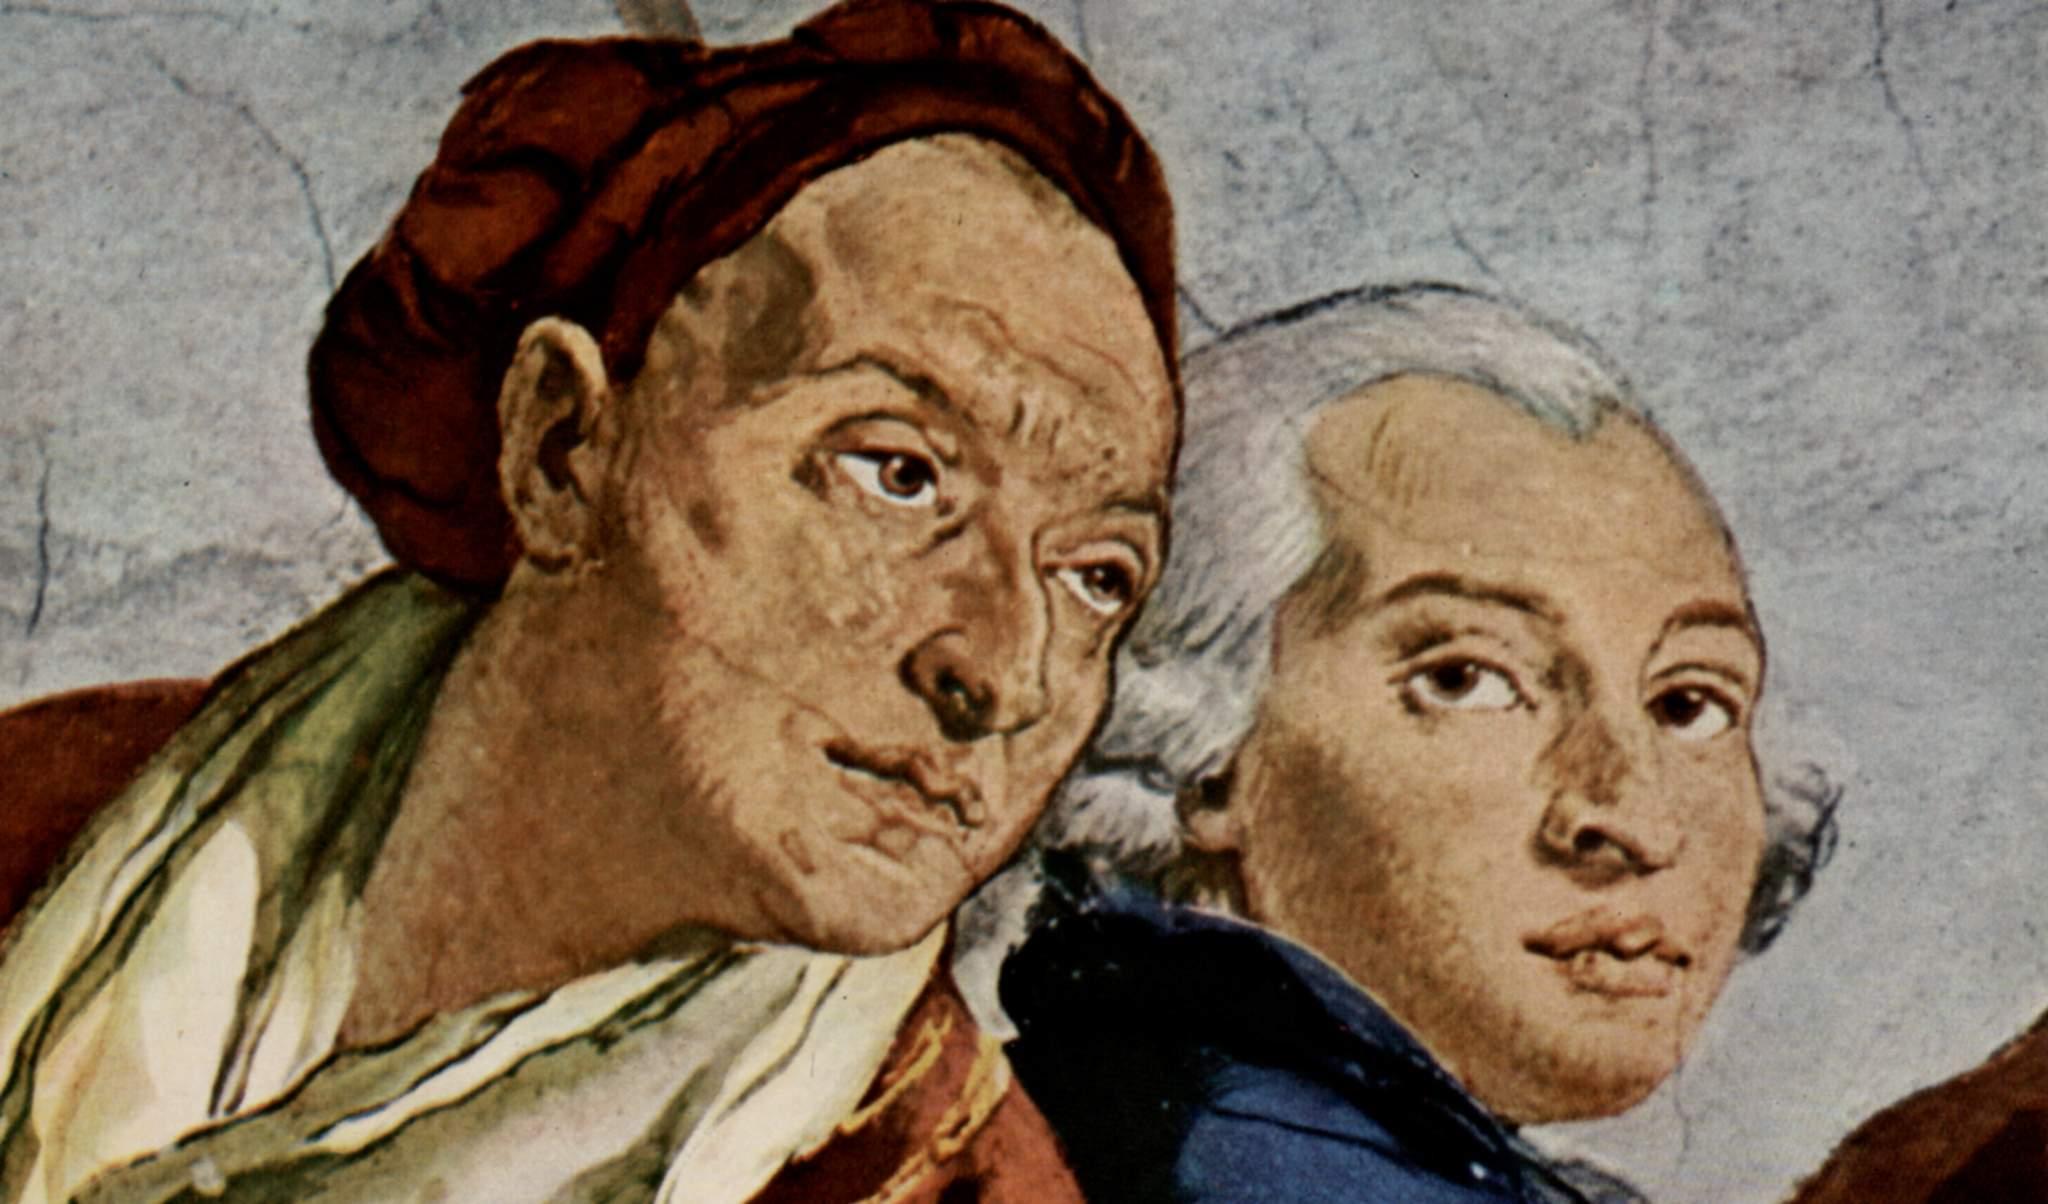 Giambattista Tiepolo and Domenico Tiepolo double portait